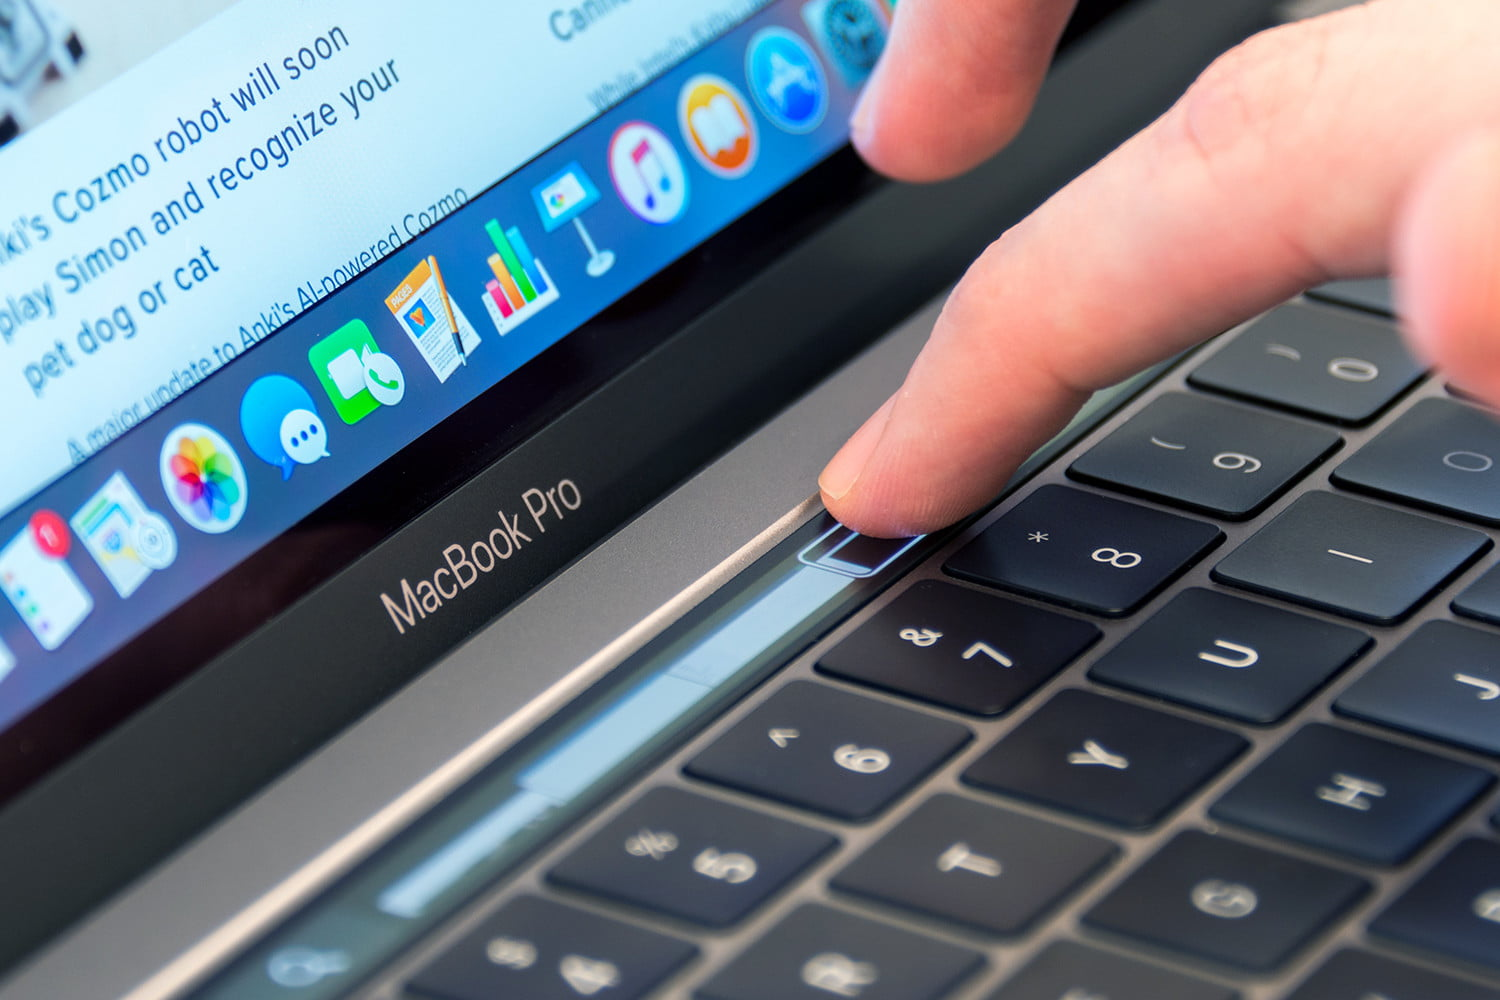 macbook-pro-2016-touchbar1-1500×1000